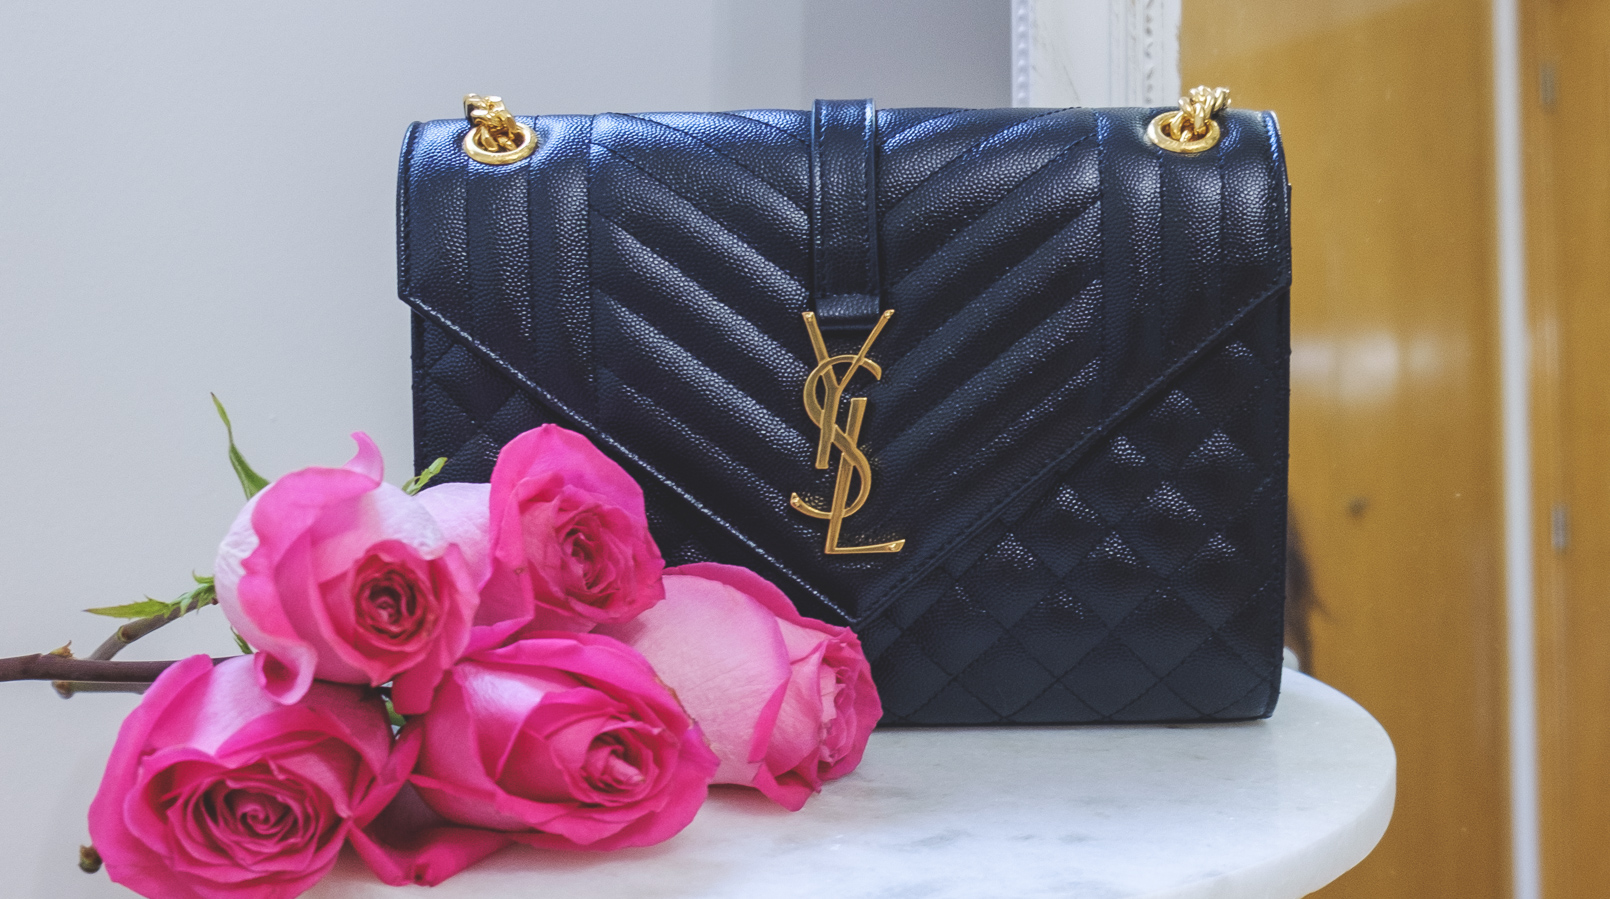 Le Fashionaire Is it worth it buying a Saint Laurent bag? ysl saint laurent black gold chain hardware luxury bag closet flowers roses bouquet 4372F EN